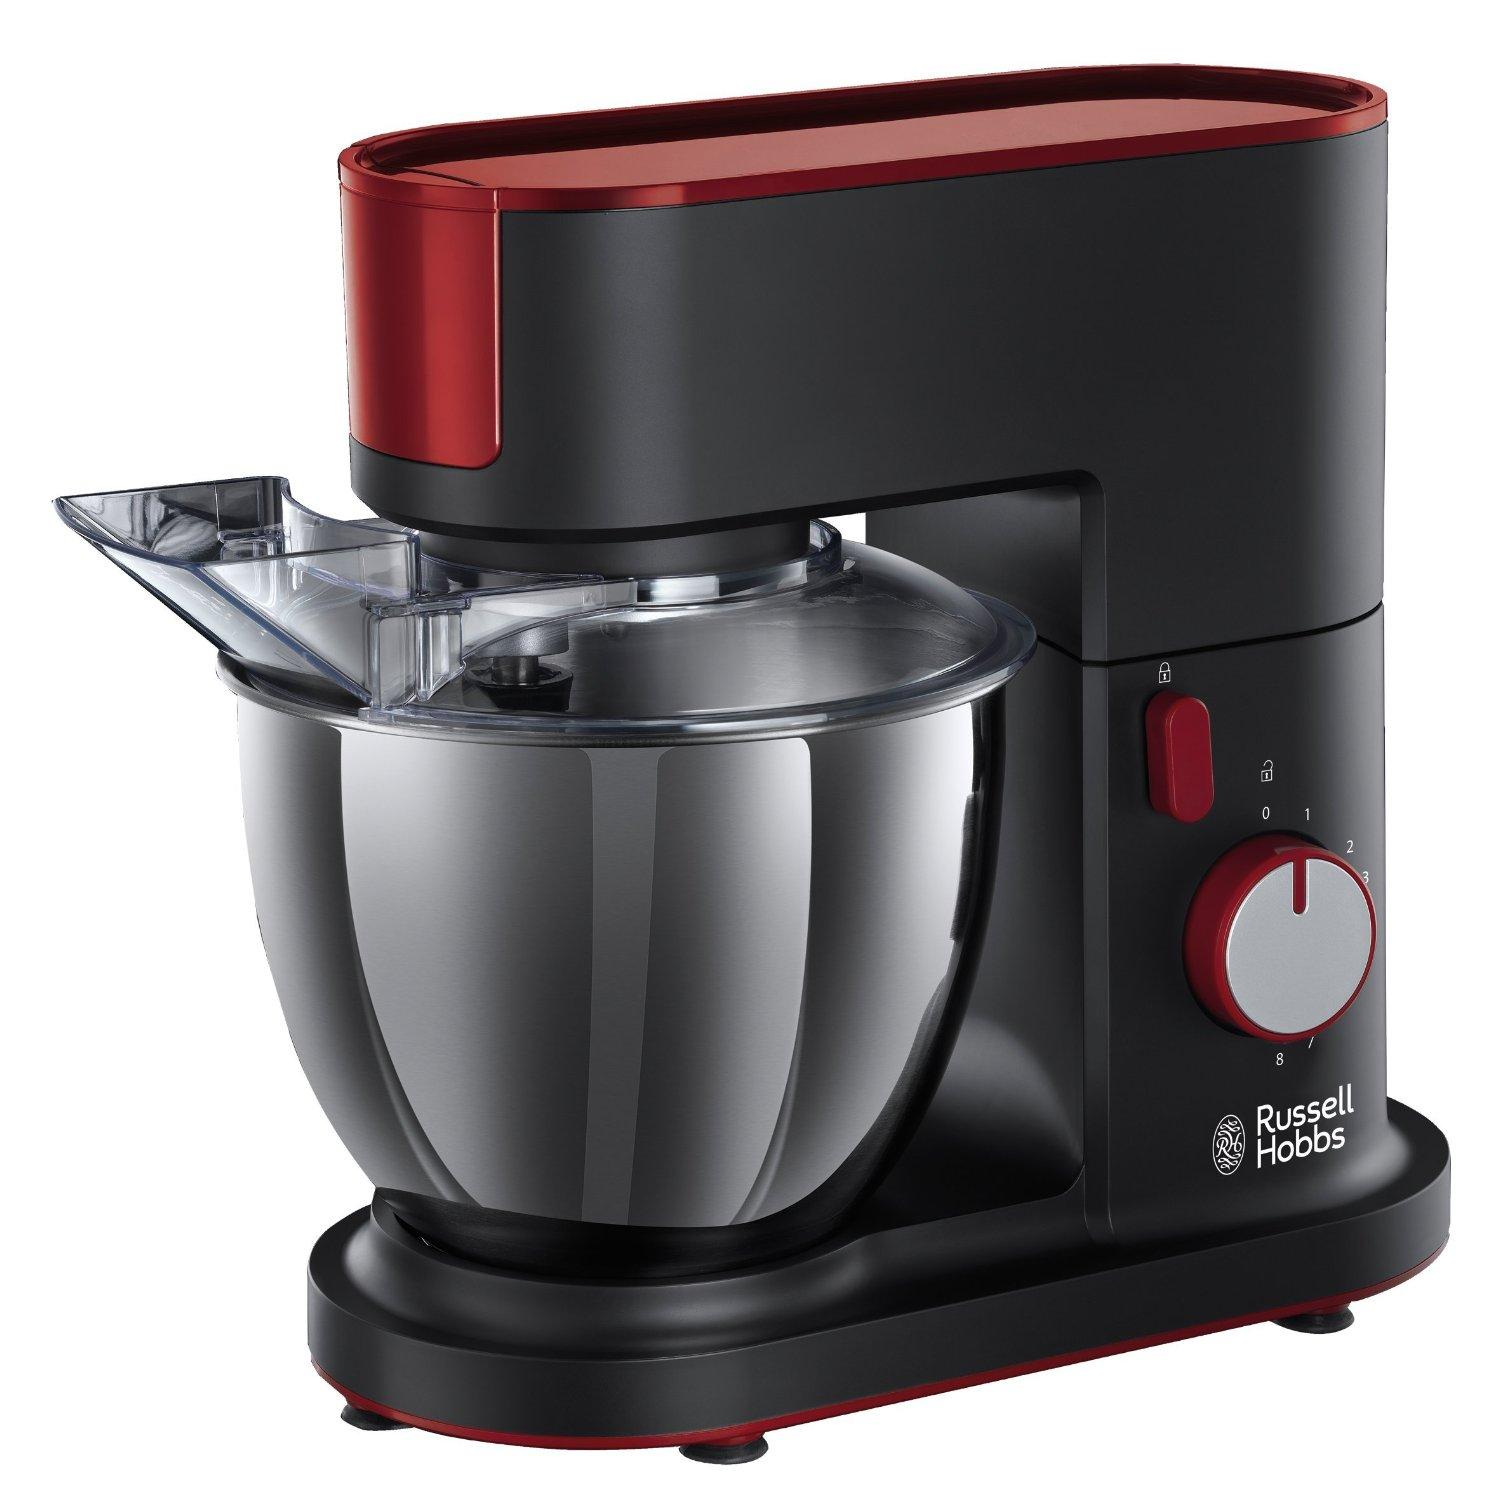 Russell hobbs - 20350 - Robot Multifonctions Desire 600 W